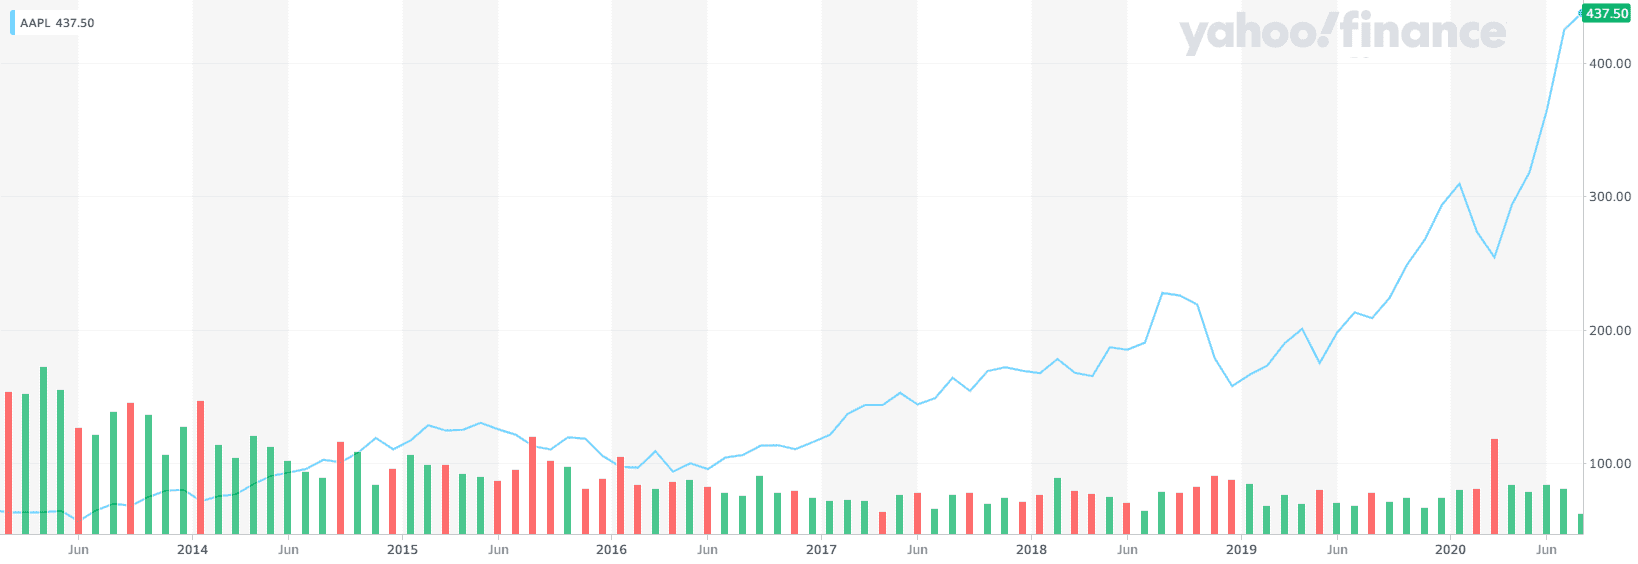 AAPL stock is one of the examples which makes me wonder when will robots take my job